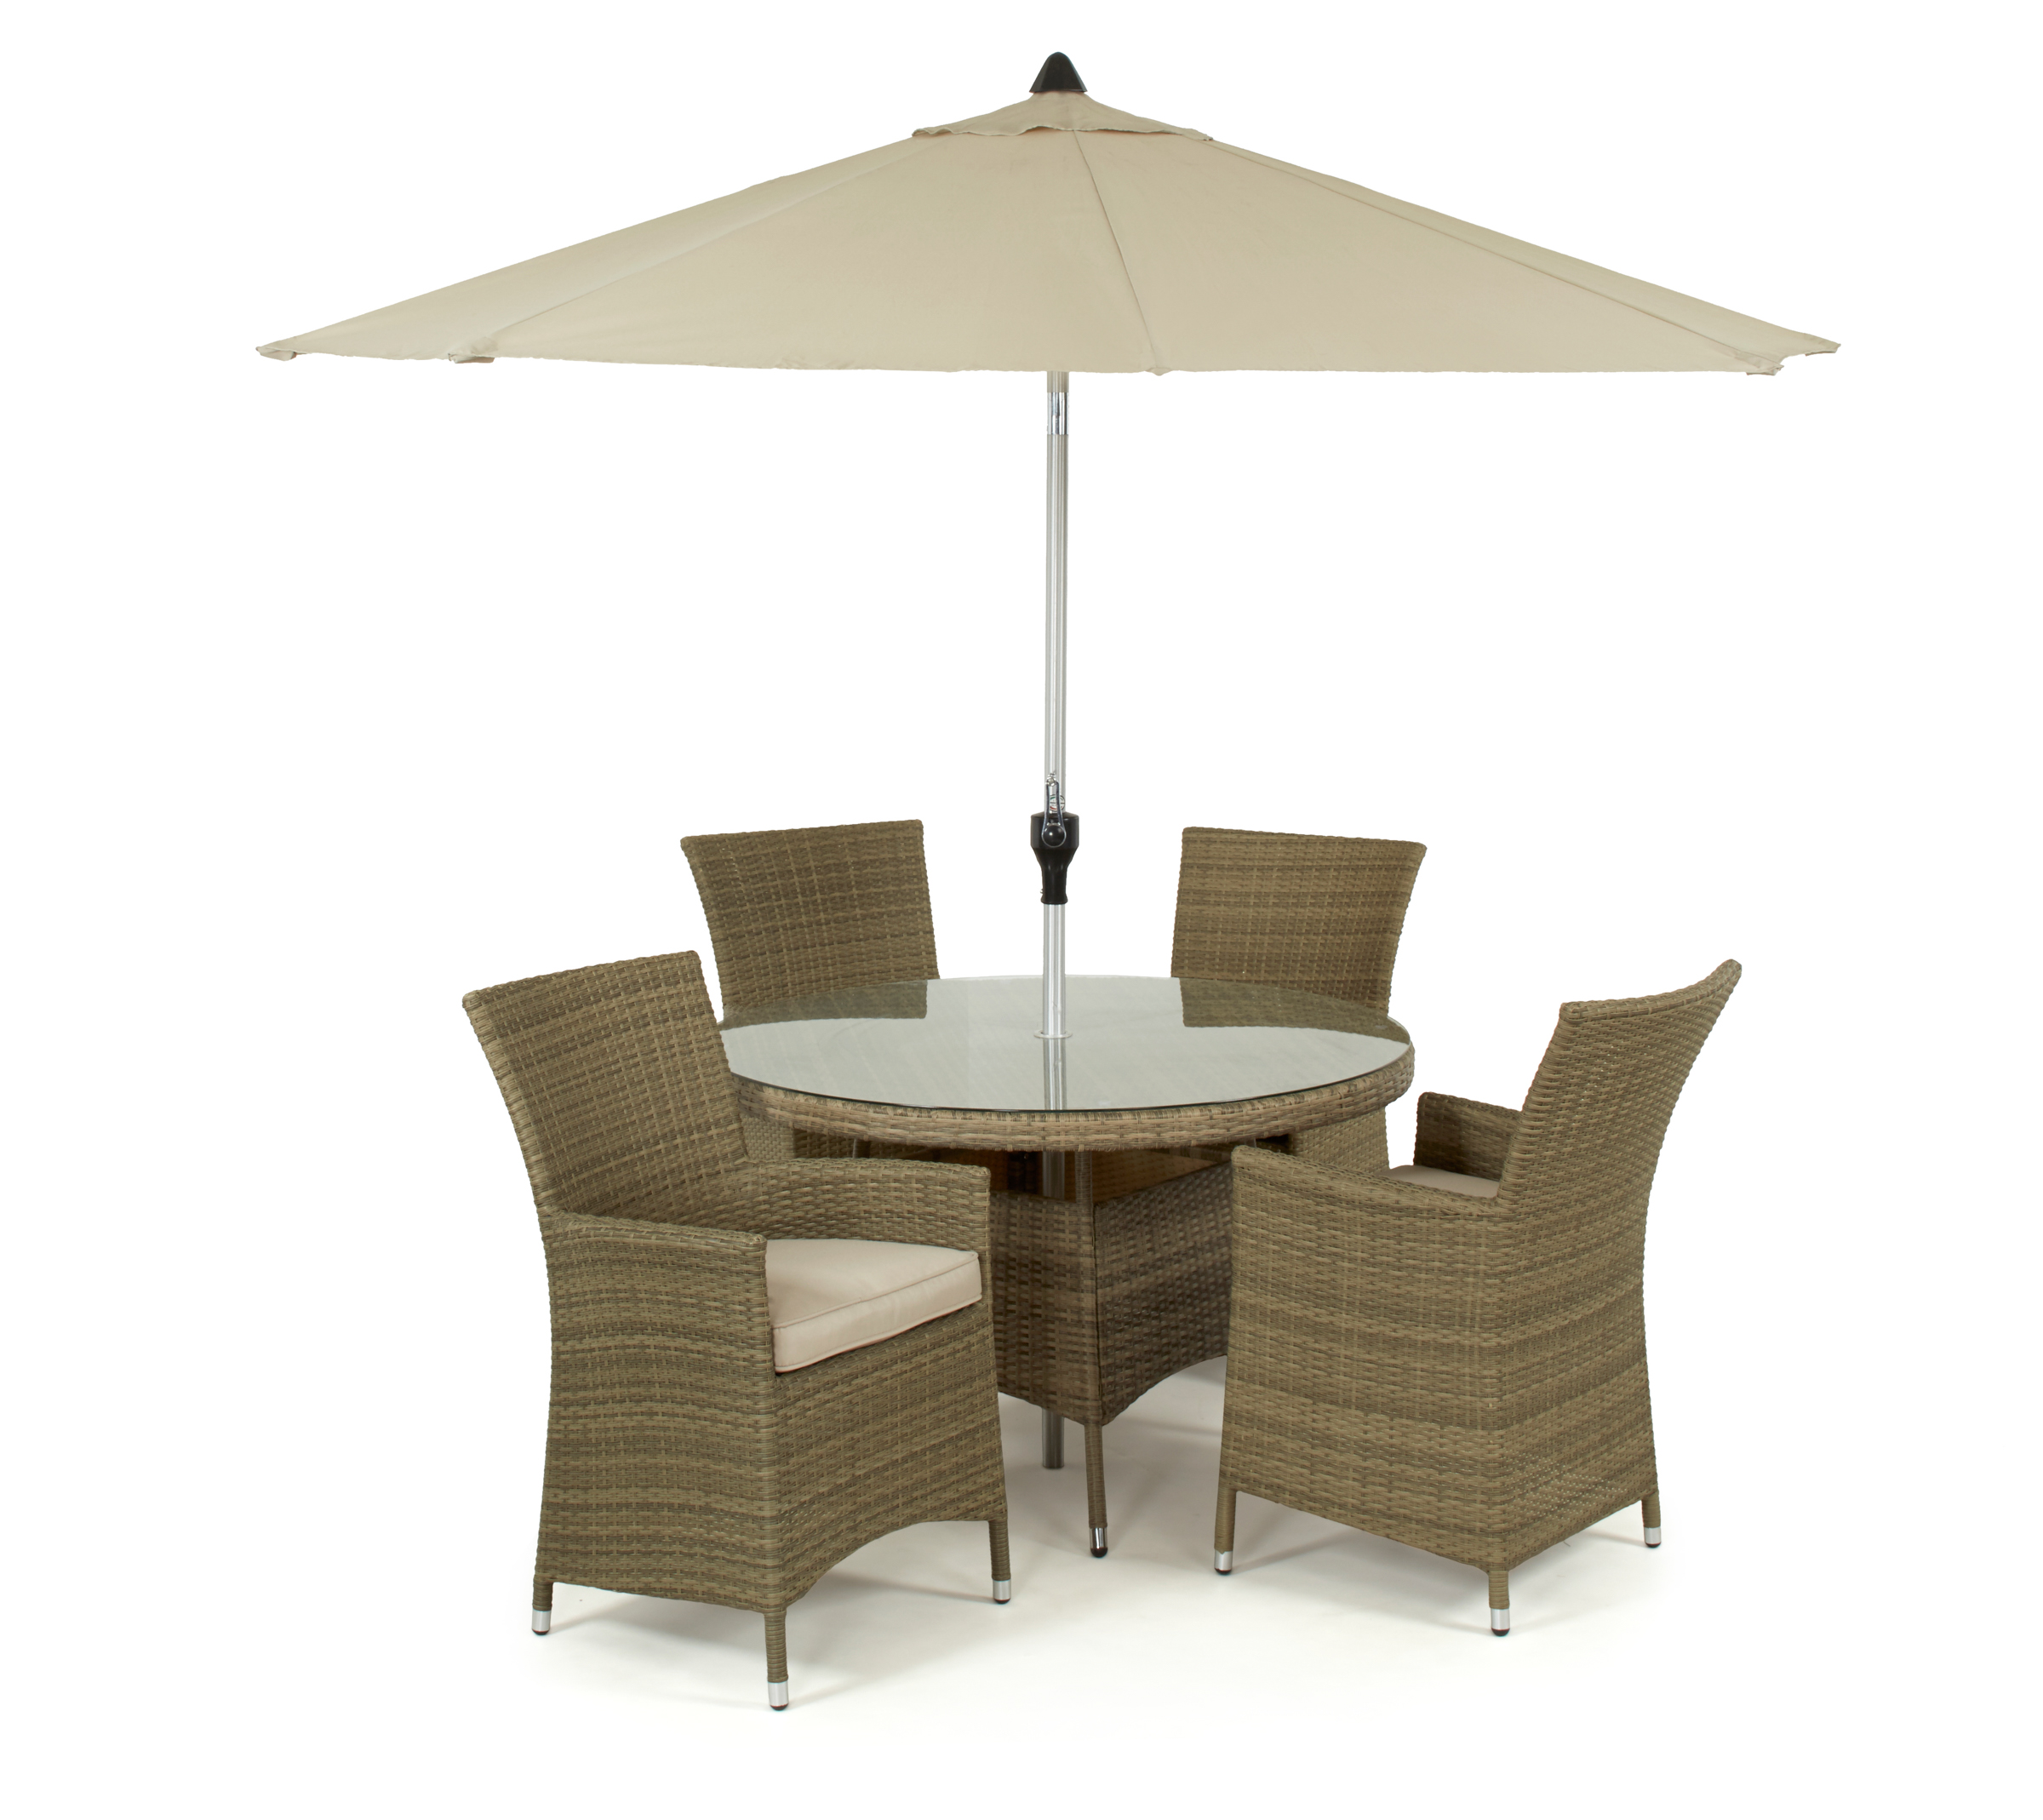 The Tuscany LA 4 Seat Round Garden Dining Set